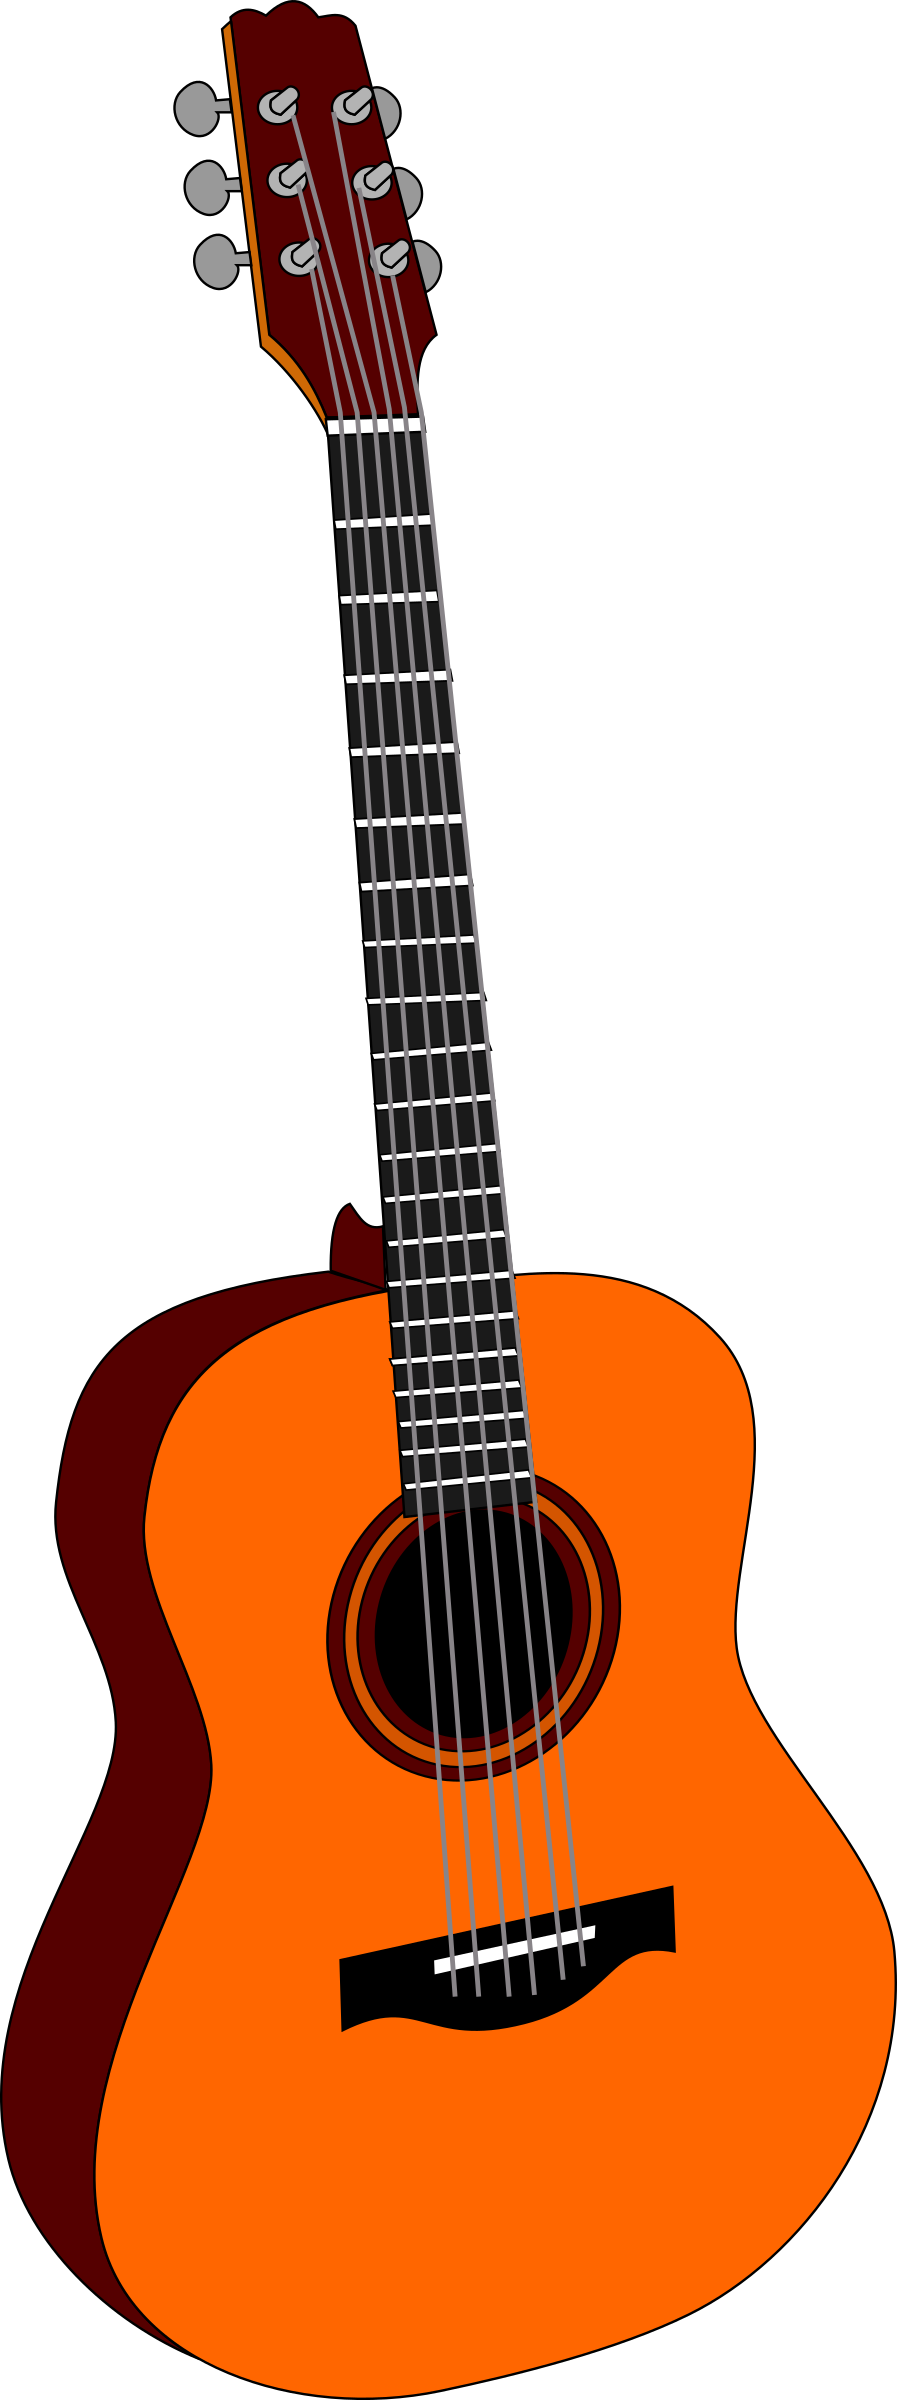 guitar 1 by papapishu